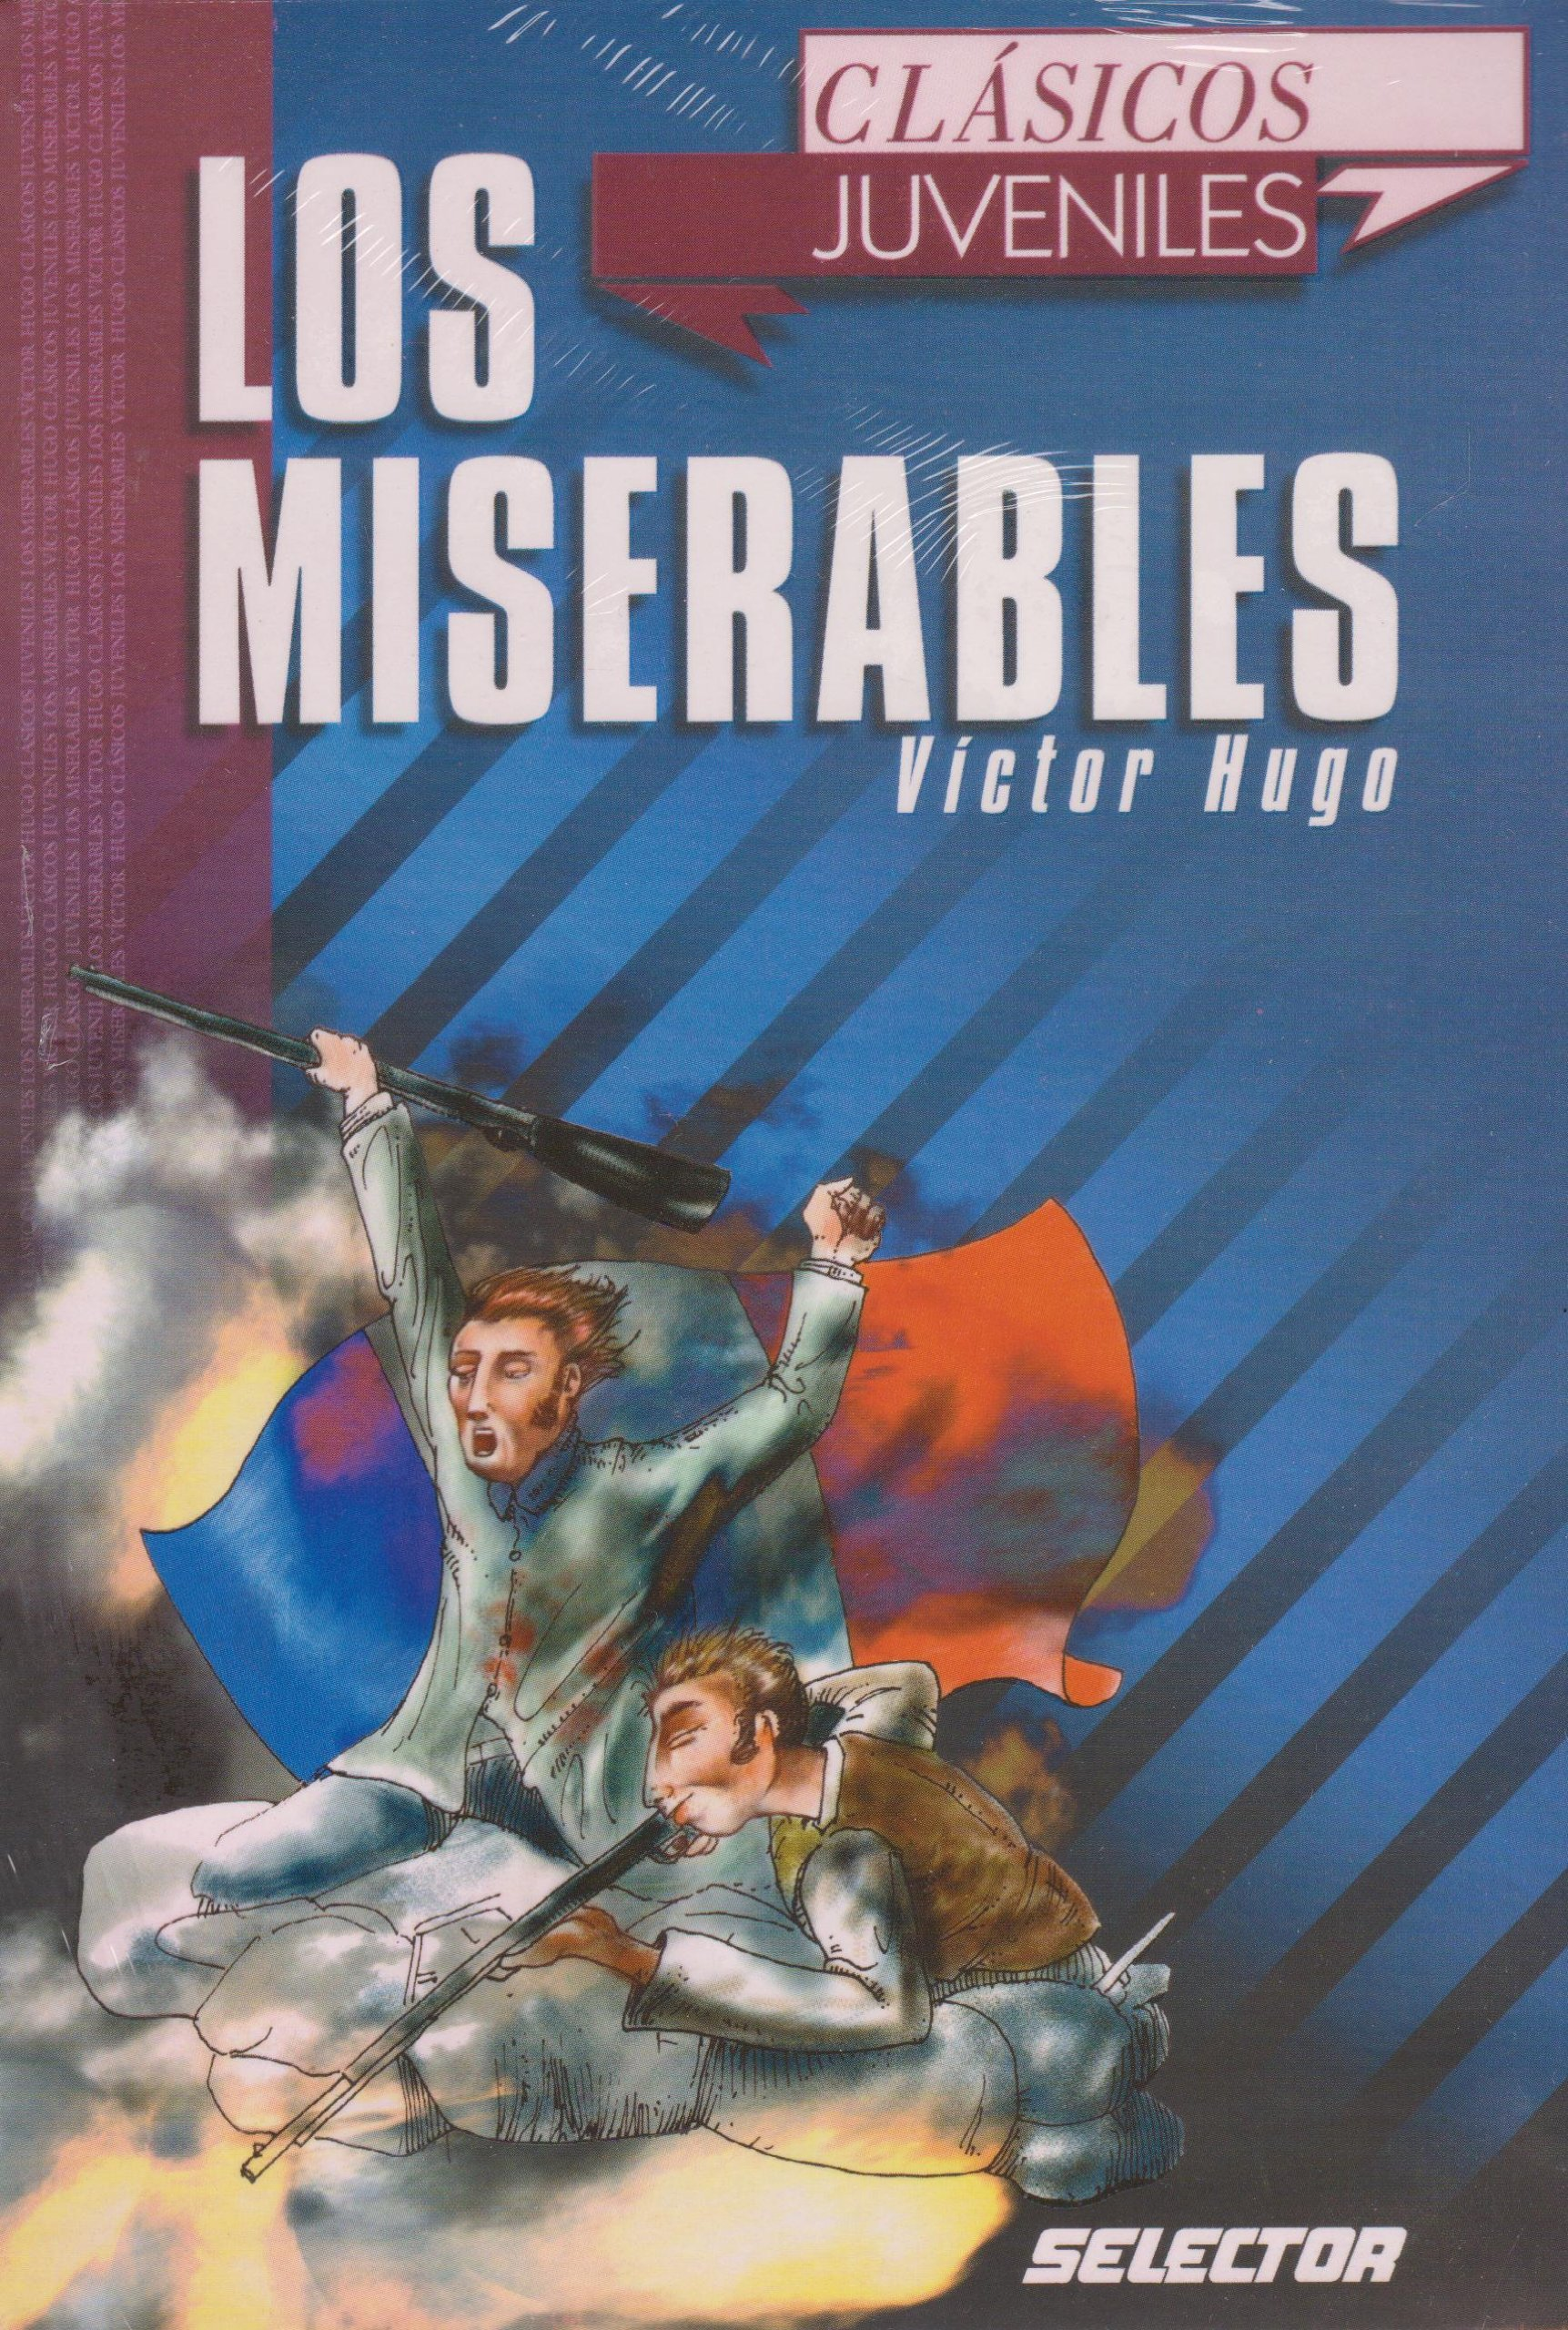 Los Miserables / Les Miserables (Clasicos juveniles): Amazon.es ...